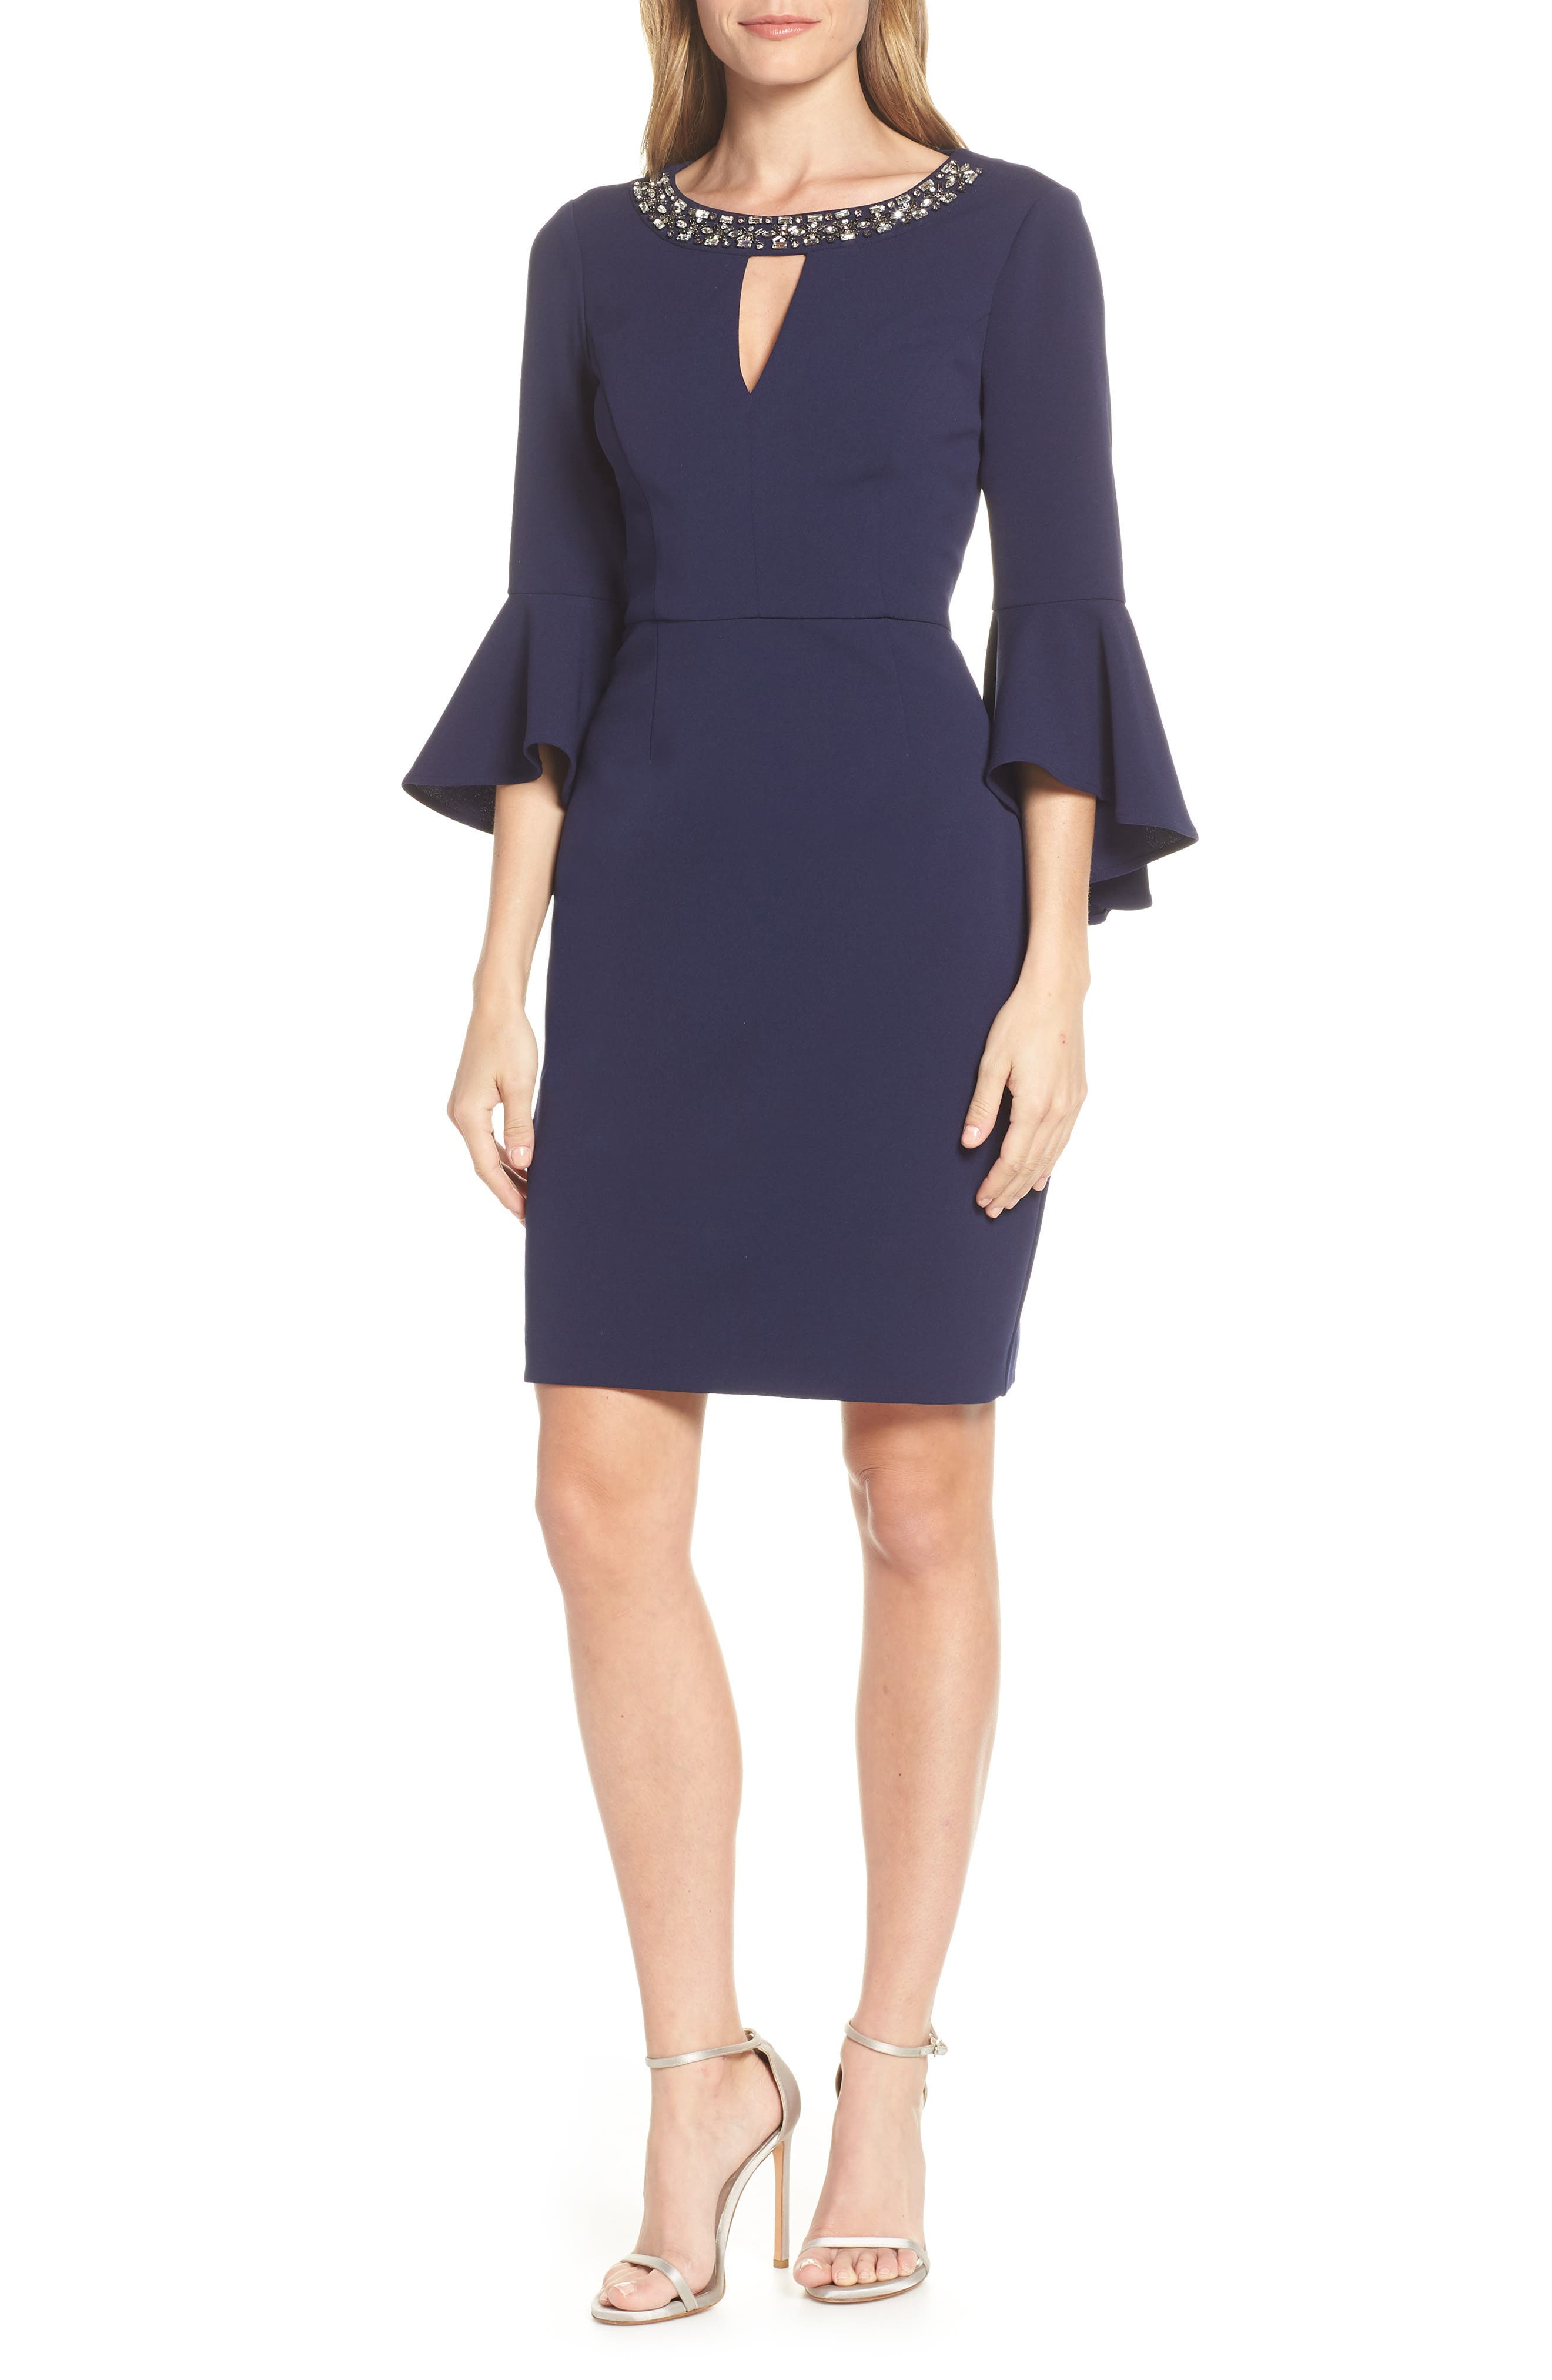 VINCE CAMUTO, Embellished Neck Sheath Dress, Main thumbnail 1, color, NAVY